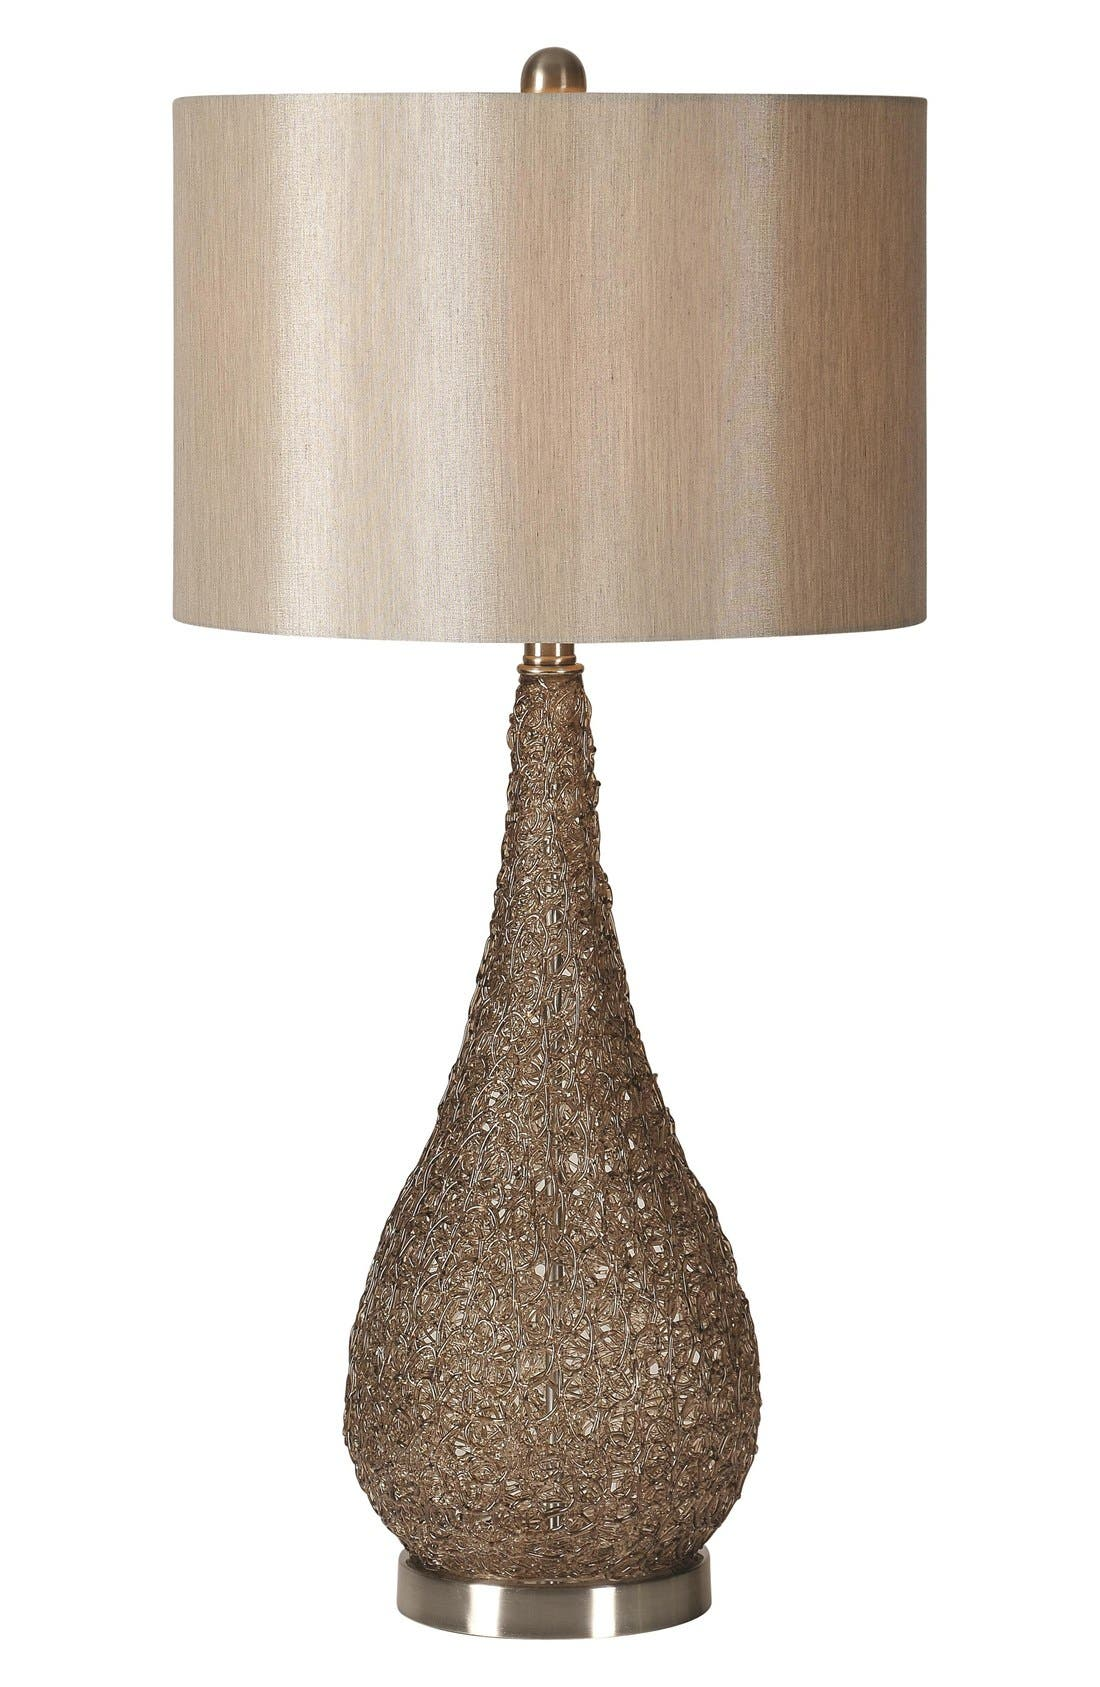 Alternate Image 1 Selected - Renwil'Sydney' Table Lamp